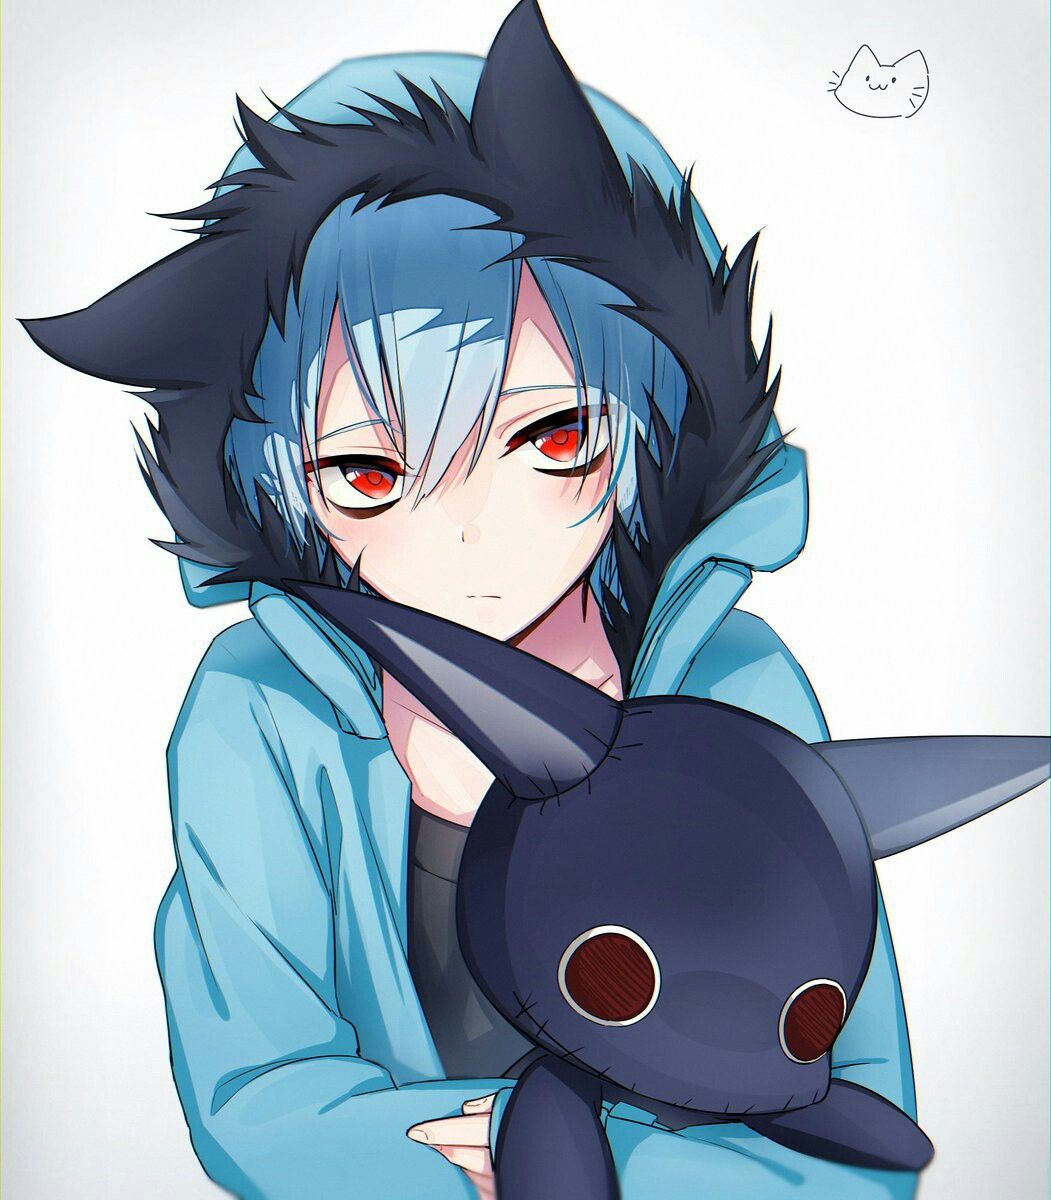 Kuro Sleepy Ash Servamp Anime Anime Neko Cute Anime Guys